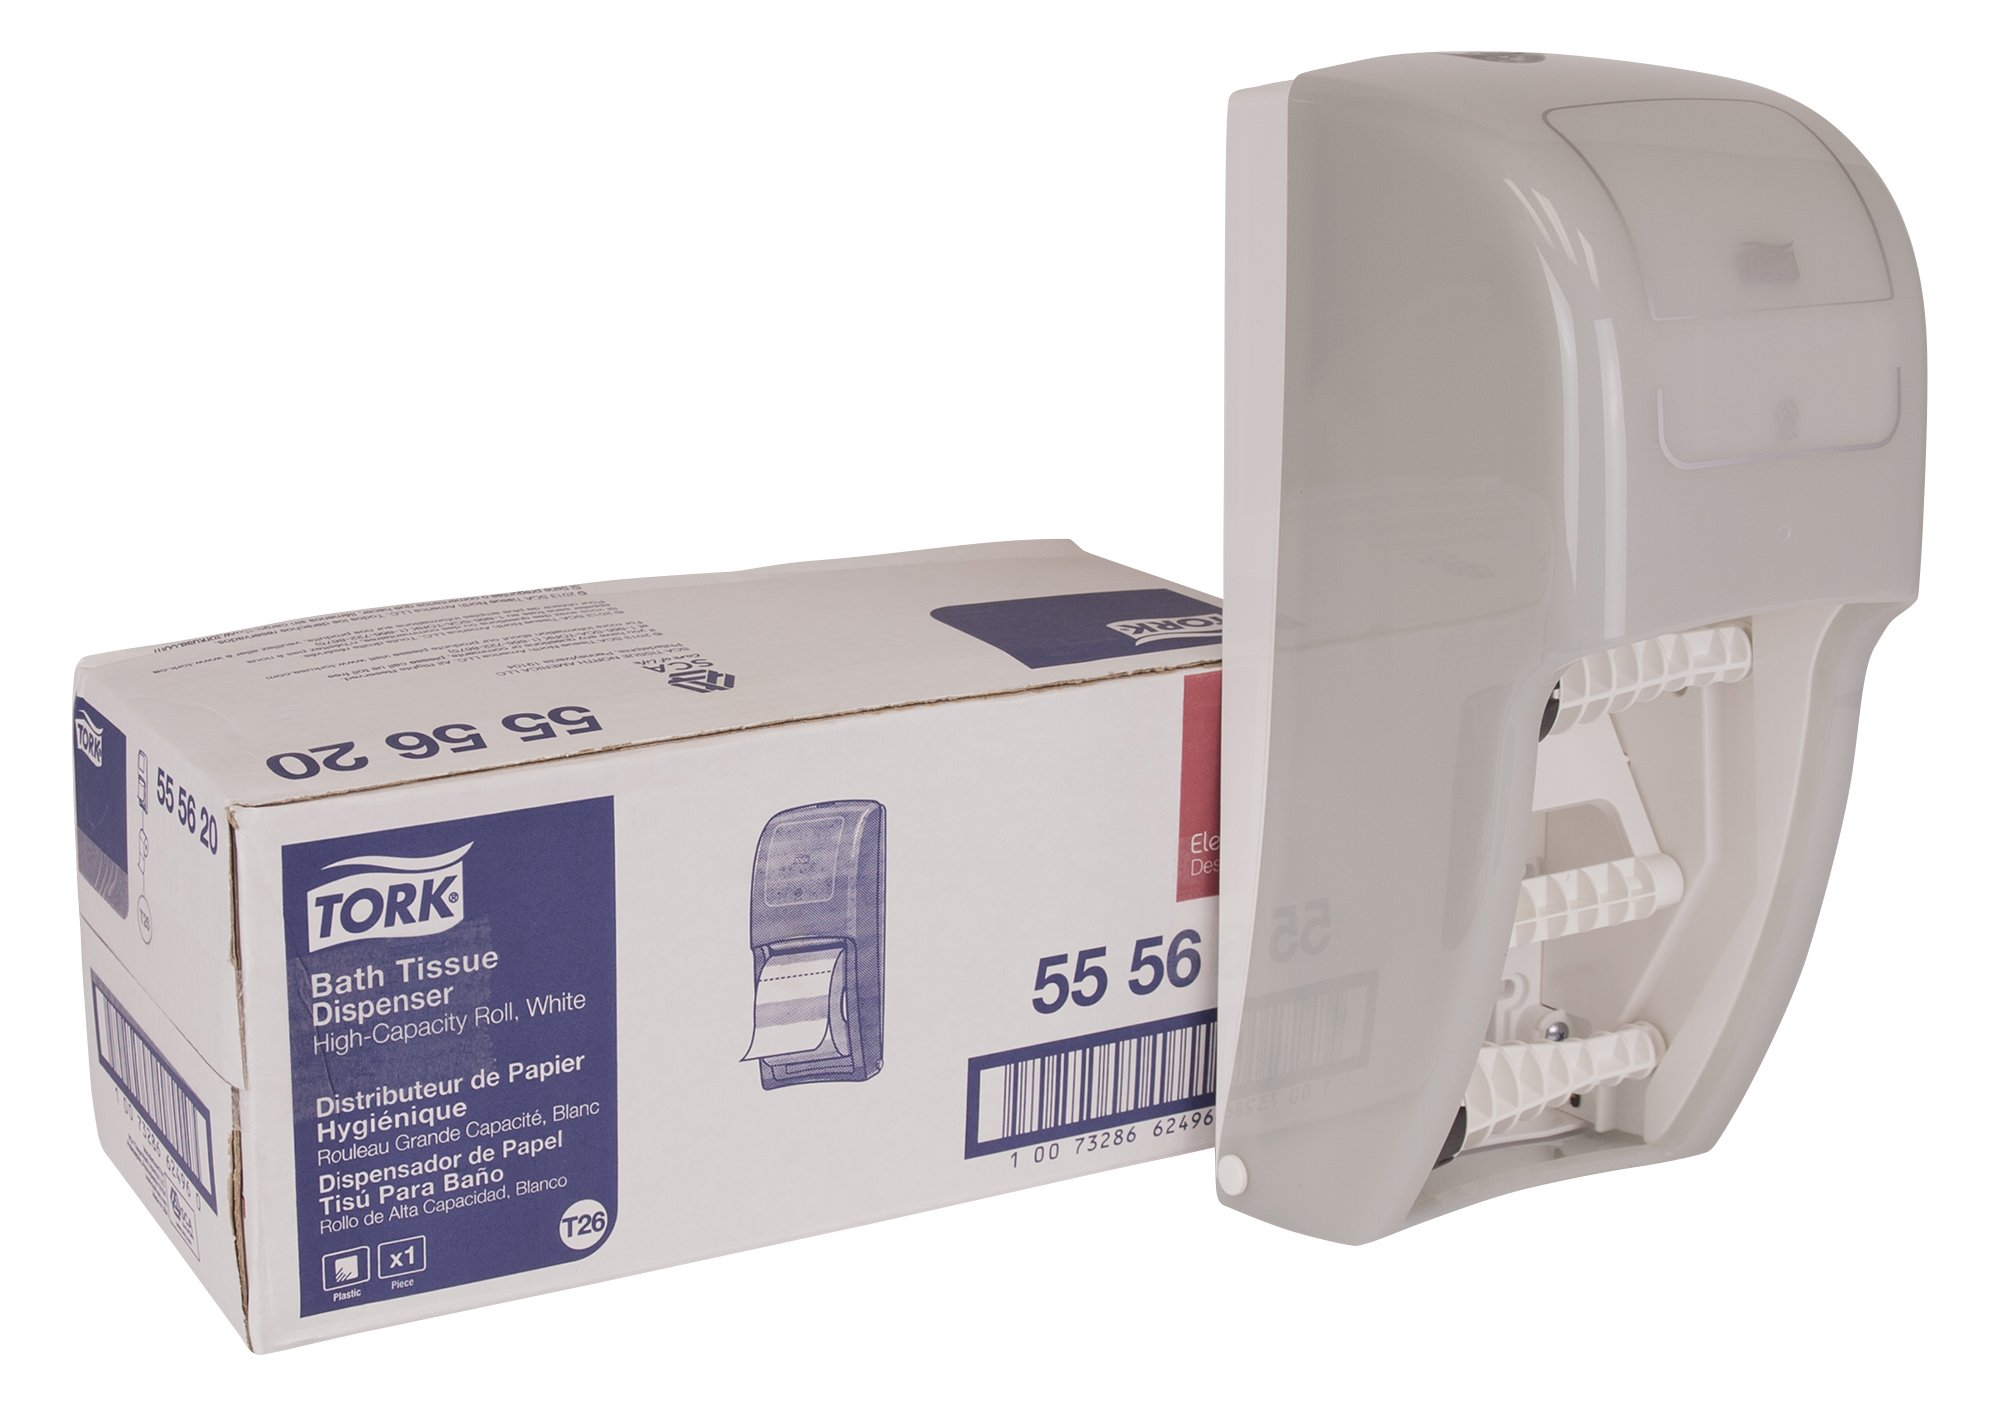 Tork 555620 Elevation High Capacity Bath Tissue Dispenser, Plastic, 14.2'' Height x 6.3'' Width x 6.46'' Depth, White (Case of 1) for use with Tork 110292A or 110291A by Tork